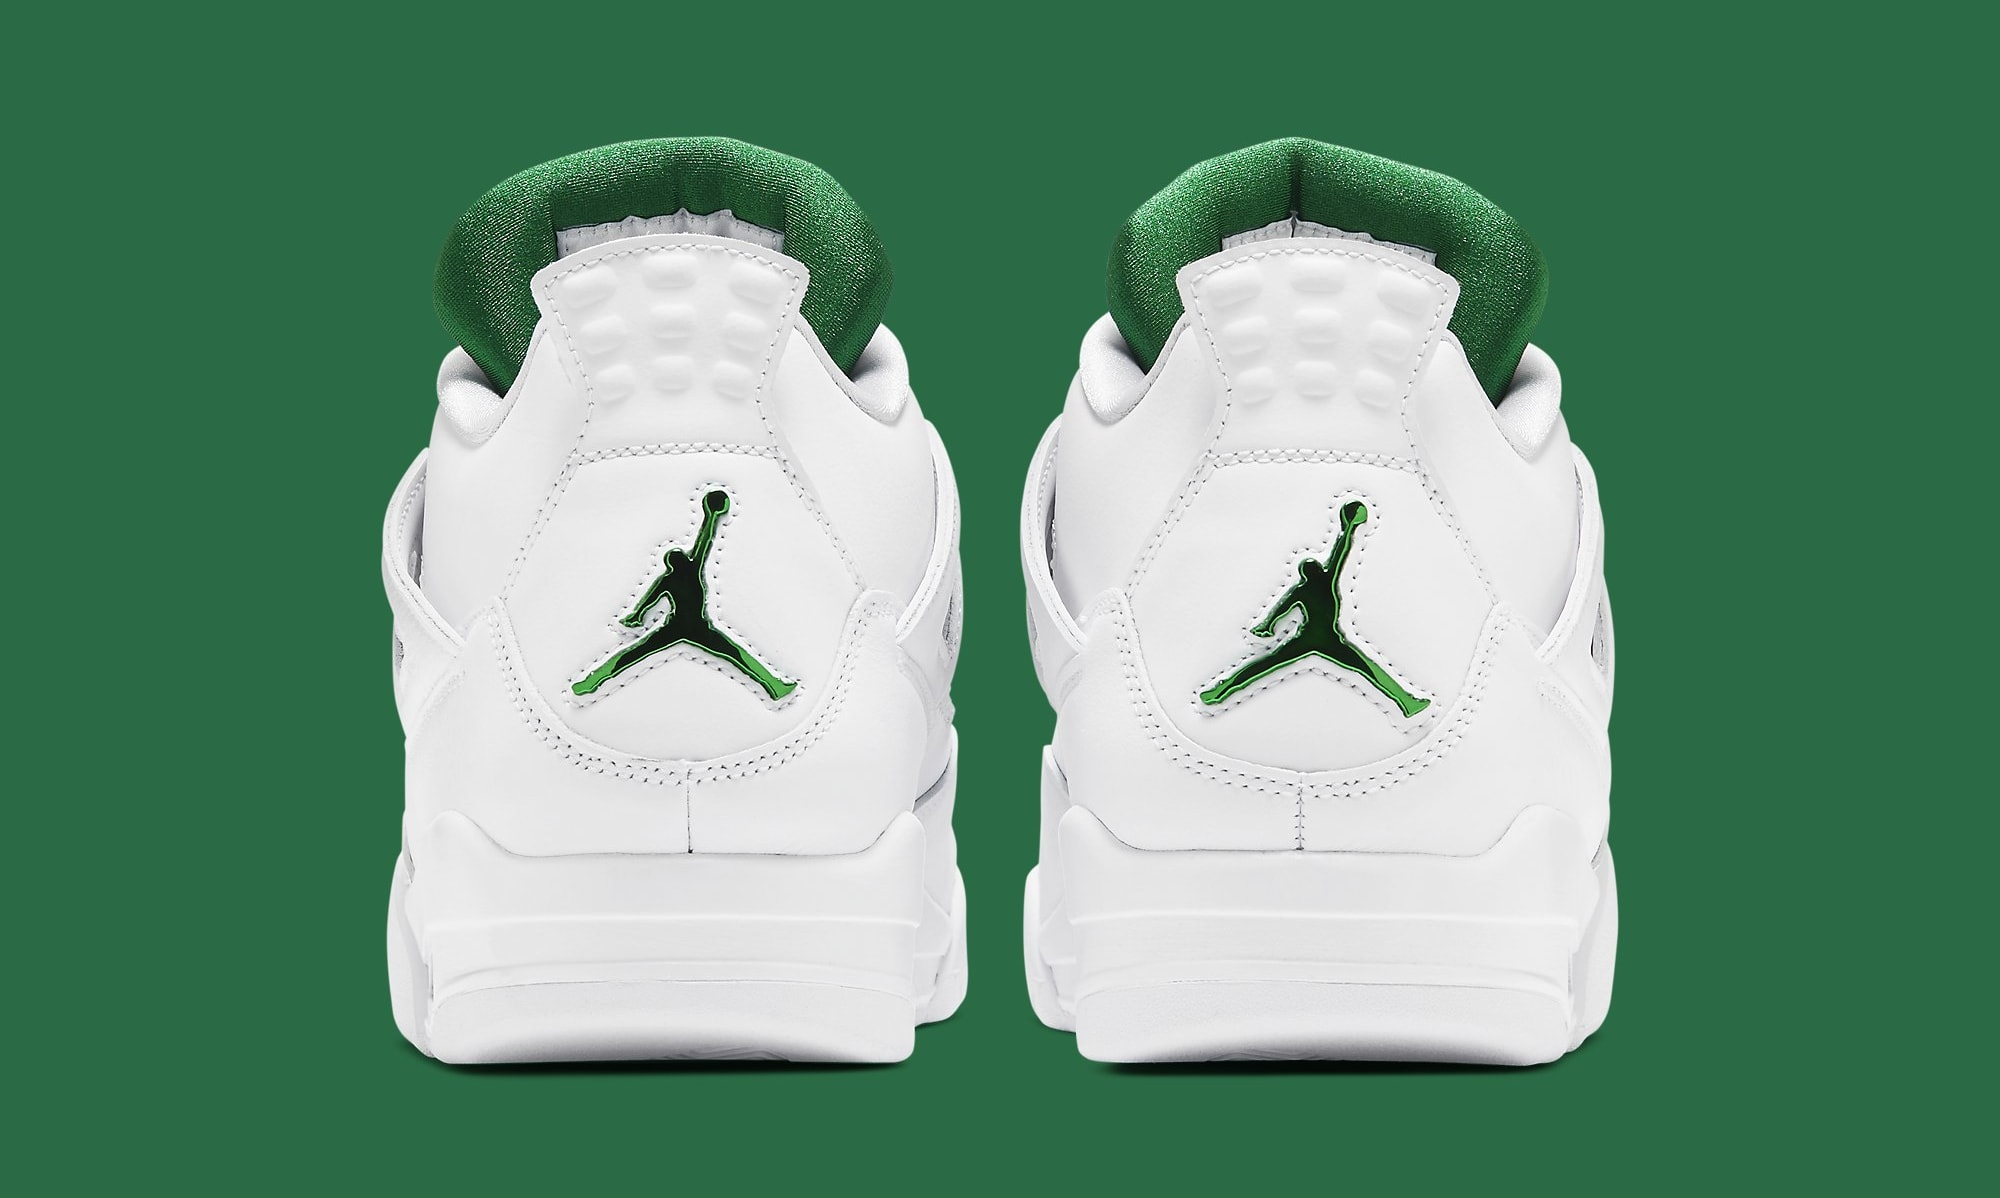 Air Jordan 4 Retro 'Green Metallic' CT8527-113 Heel